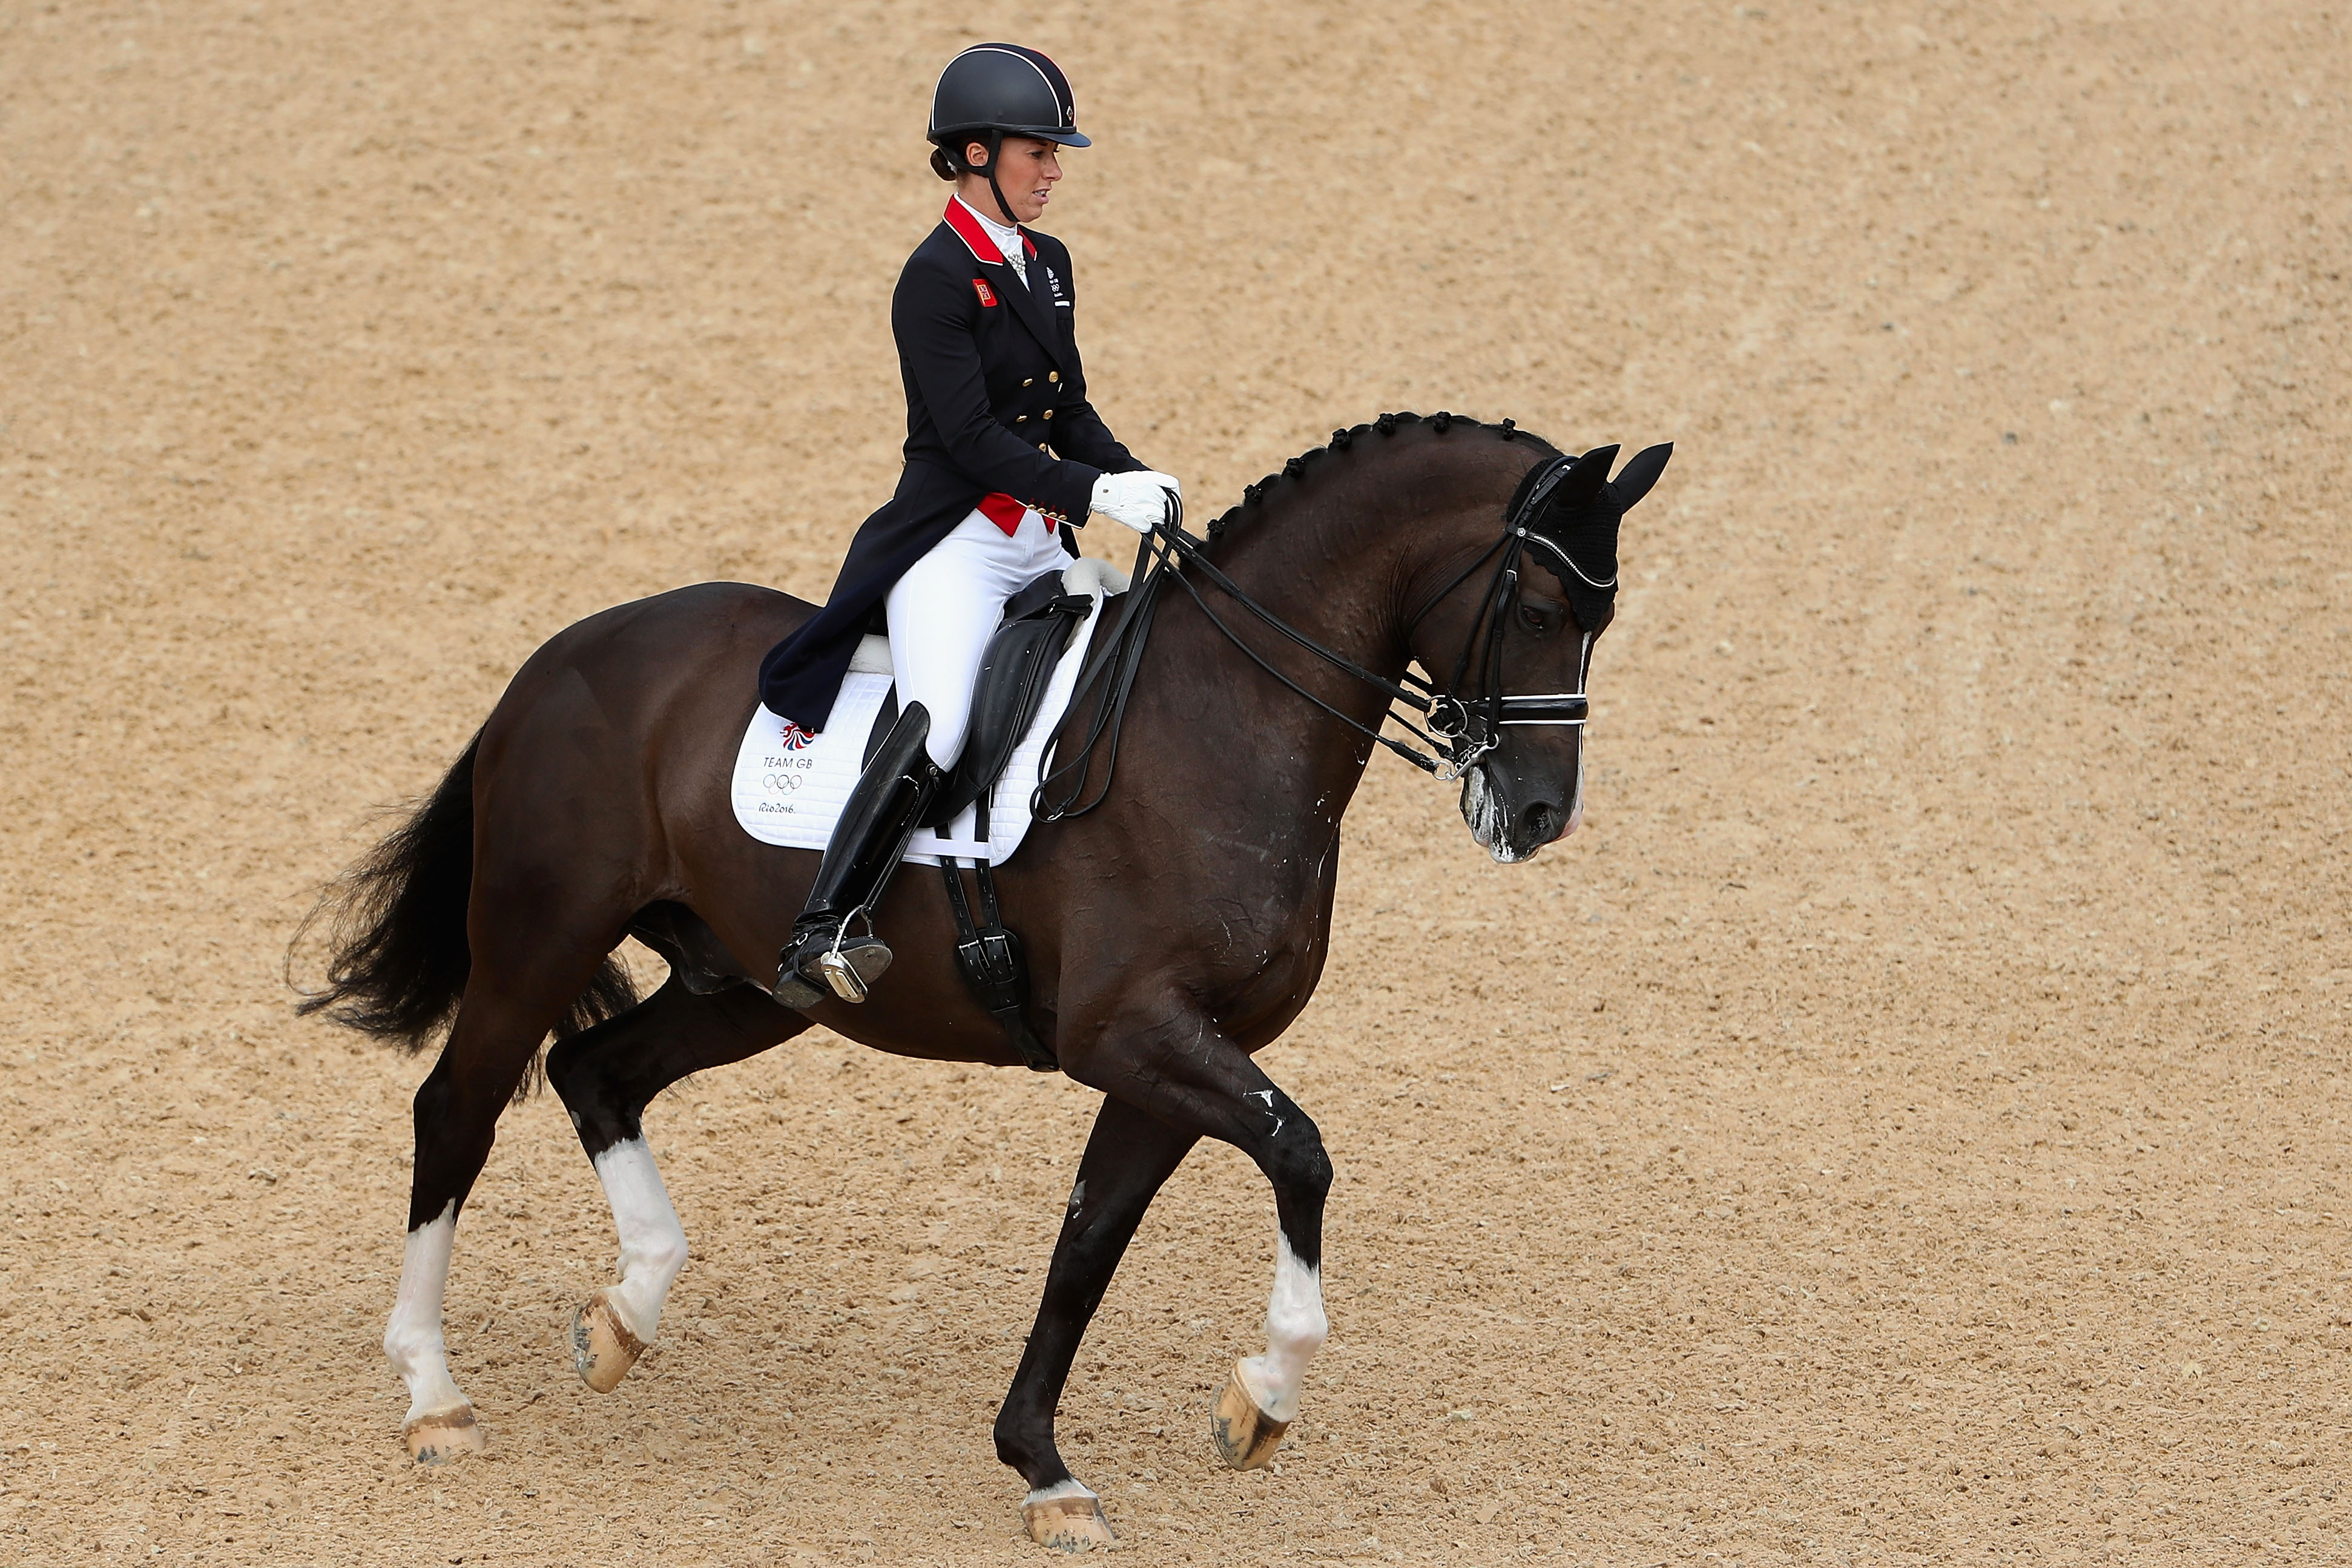 Yes, of course dressage is going to feature in this list (Picture: Getty)